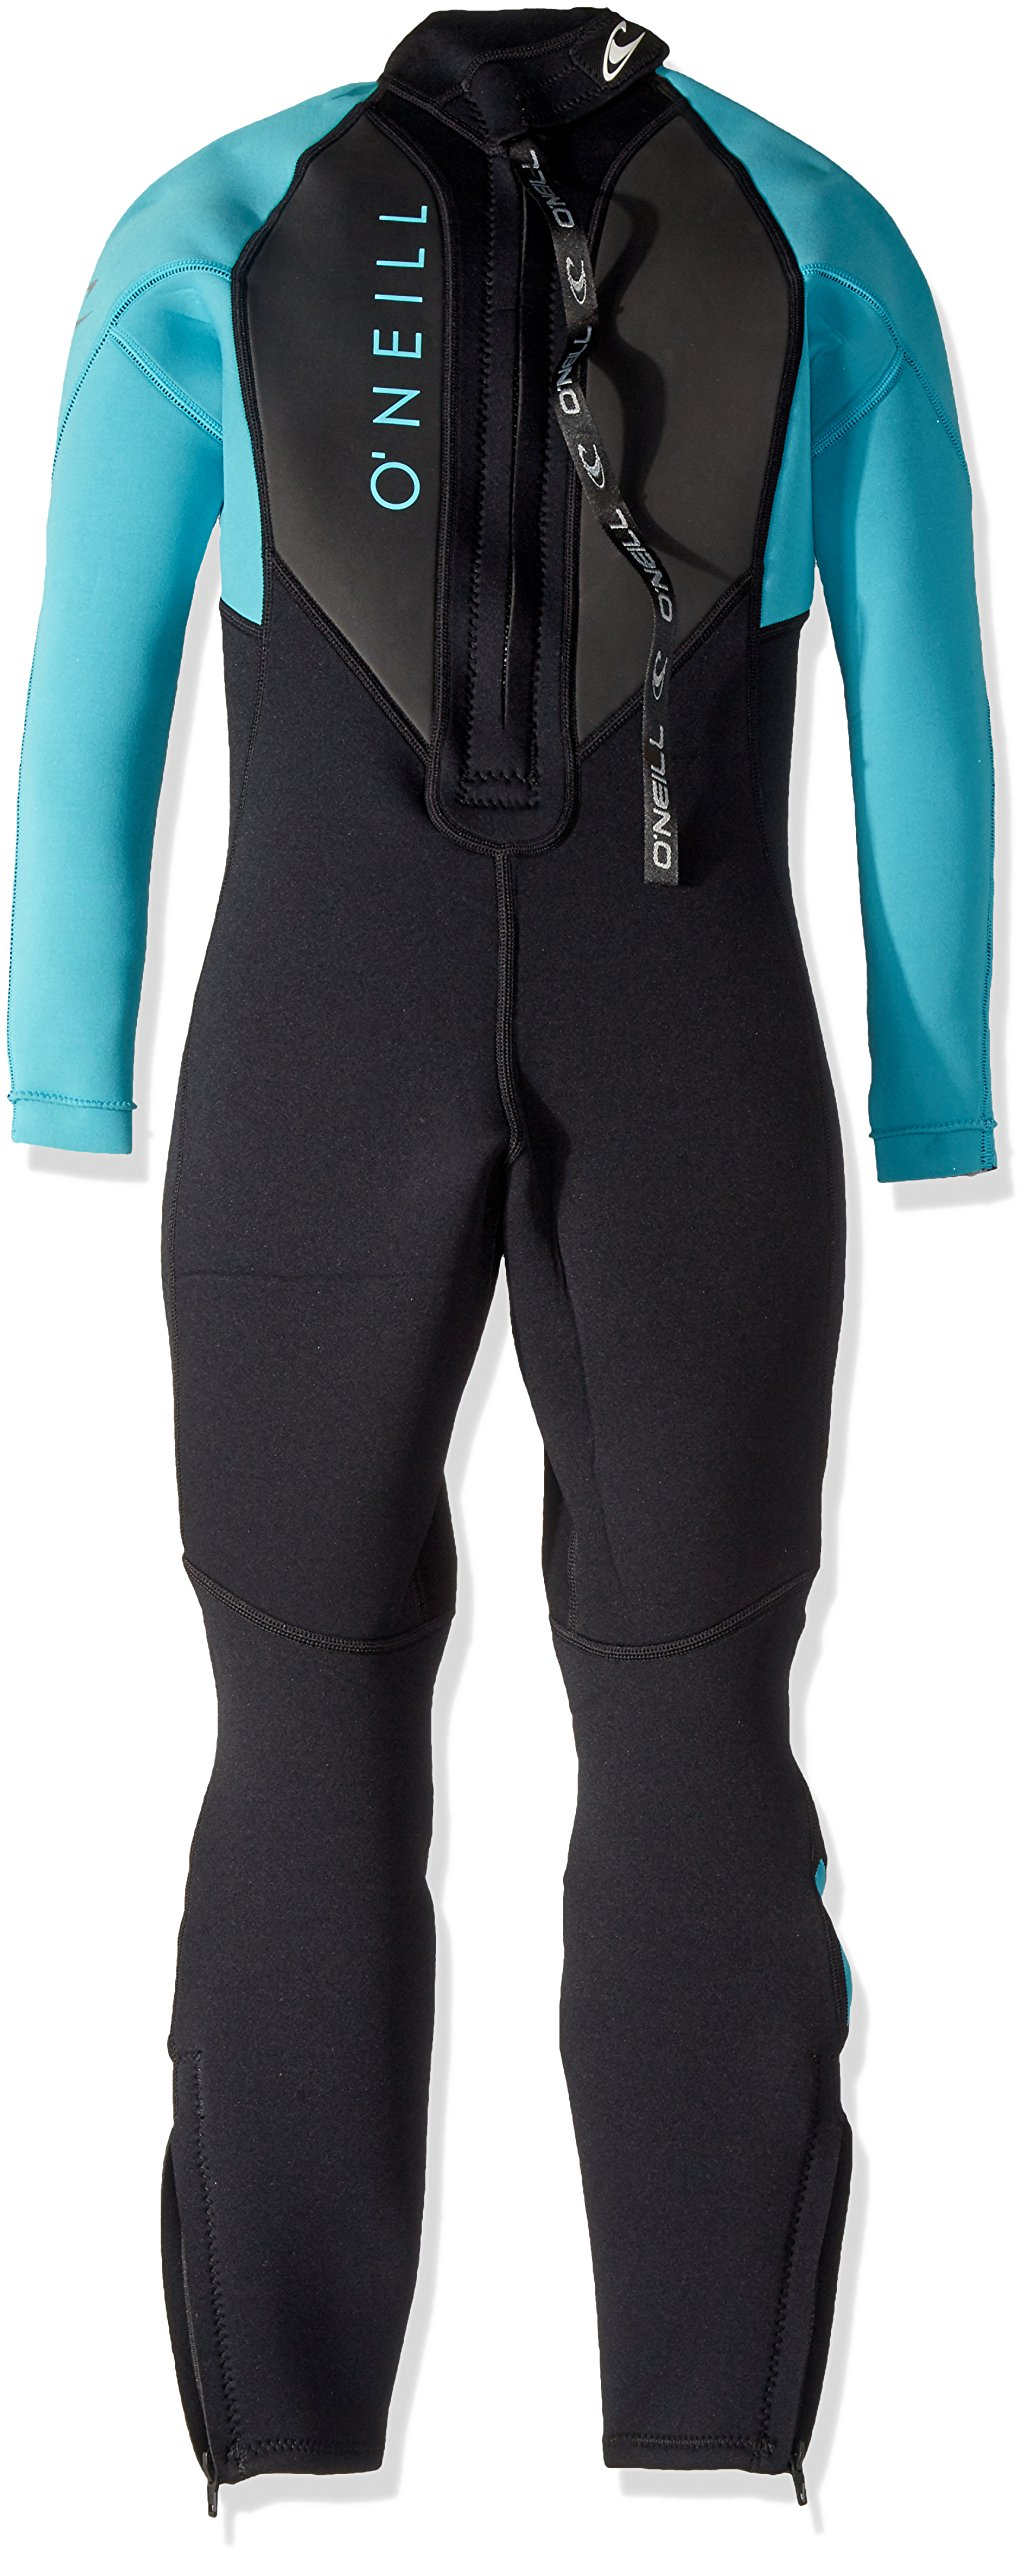 O'Neill Youth Reactor-2 3/2mm Back Zip Full Wetsuit, Black/Aqua, 6 by O'Neill Wetsuits (Image #2)